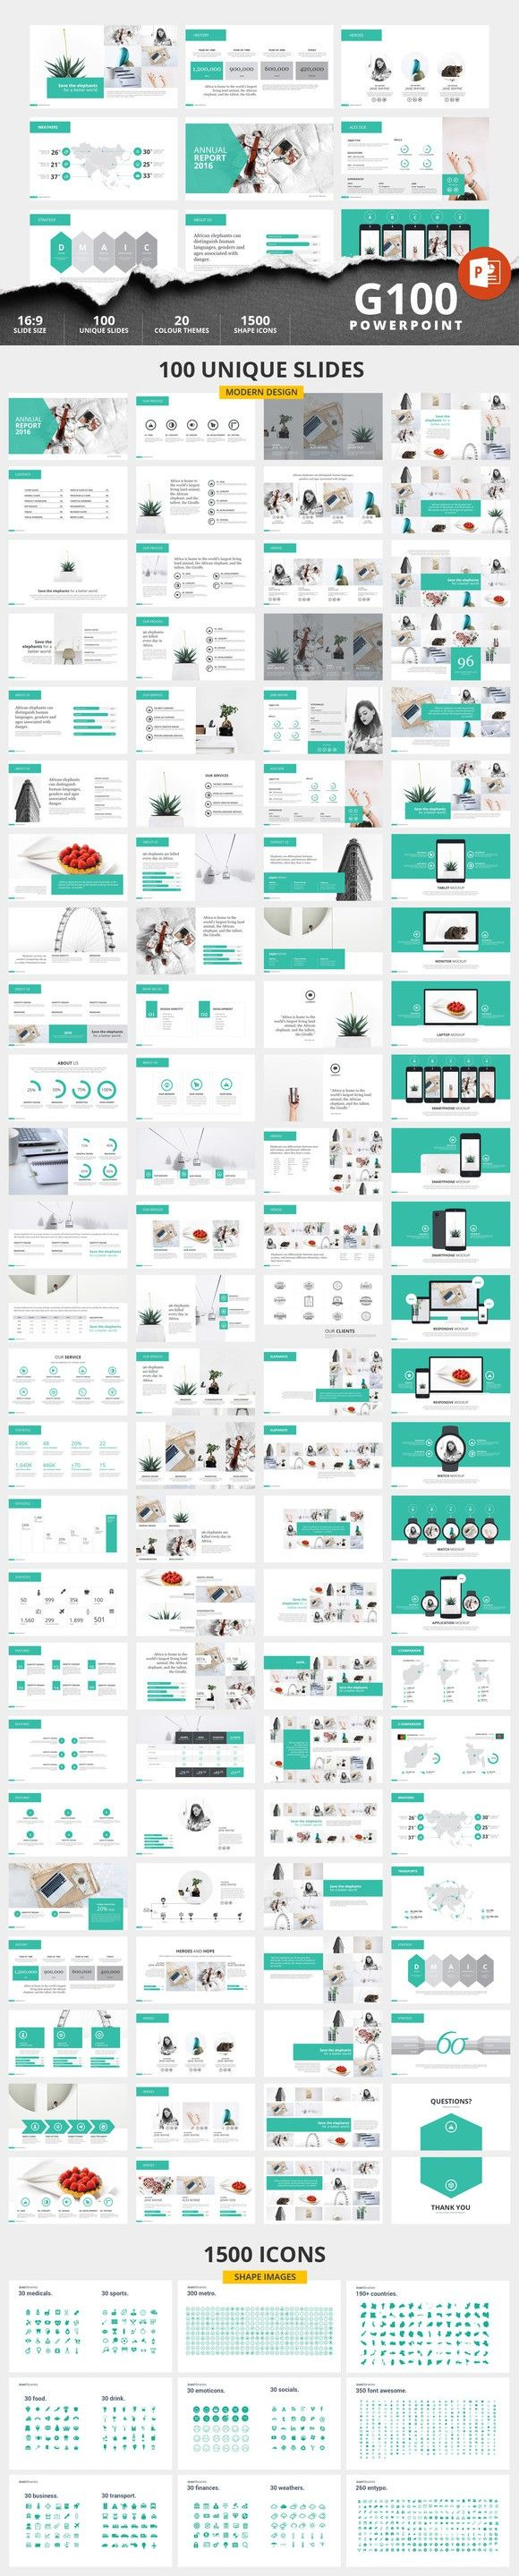 G100 Magazine Powerpoint Template. Annual Report Templates. $10.00